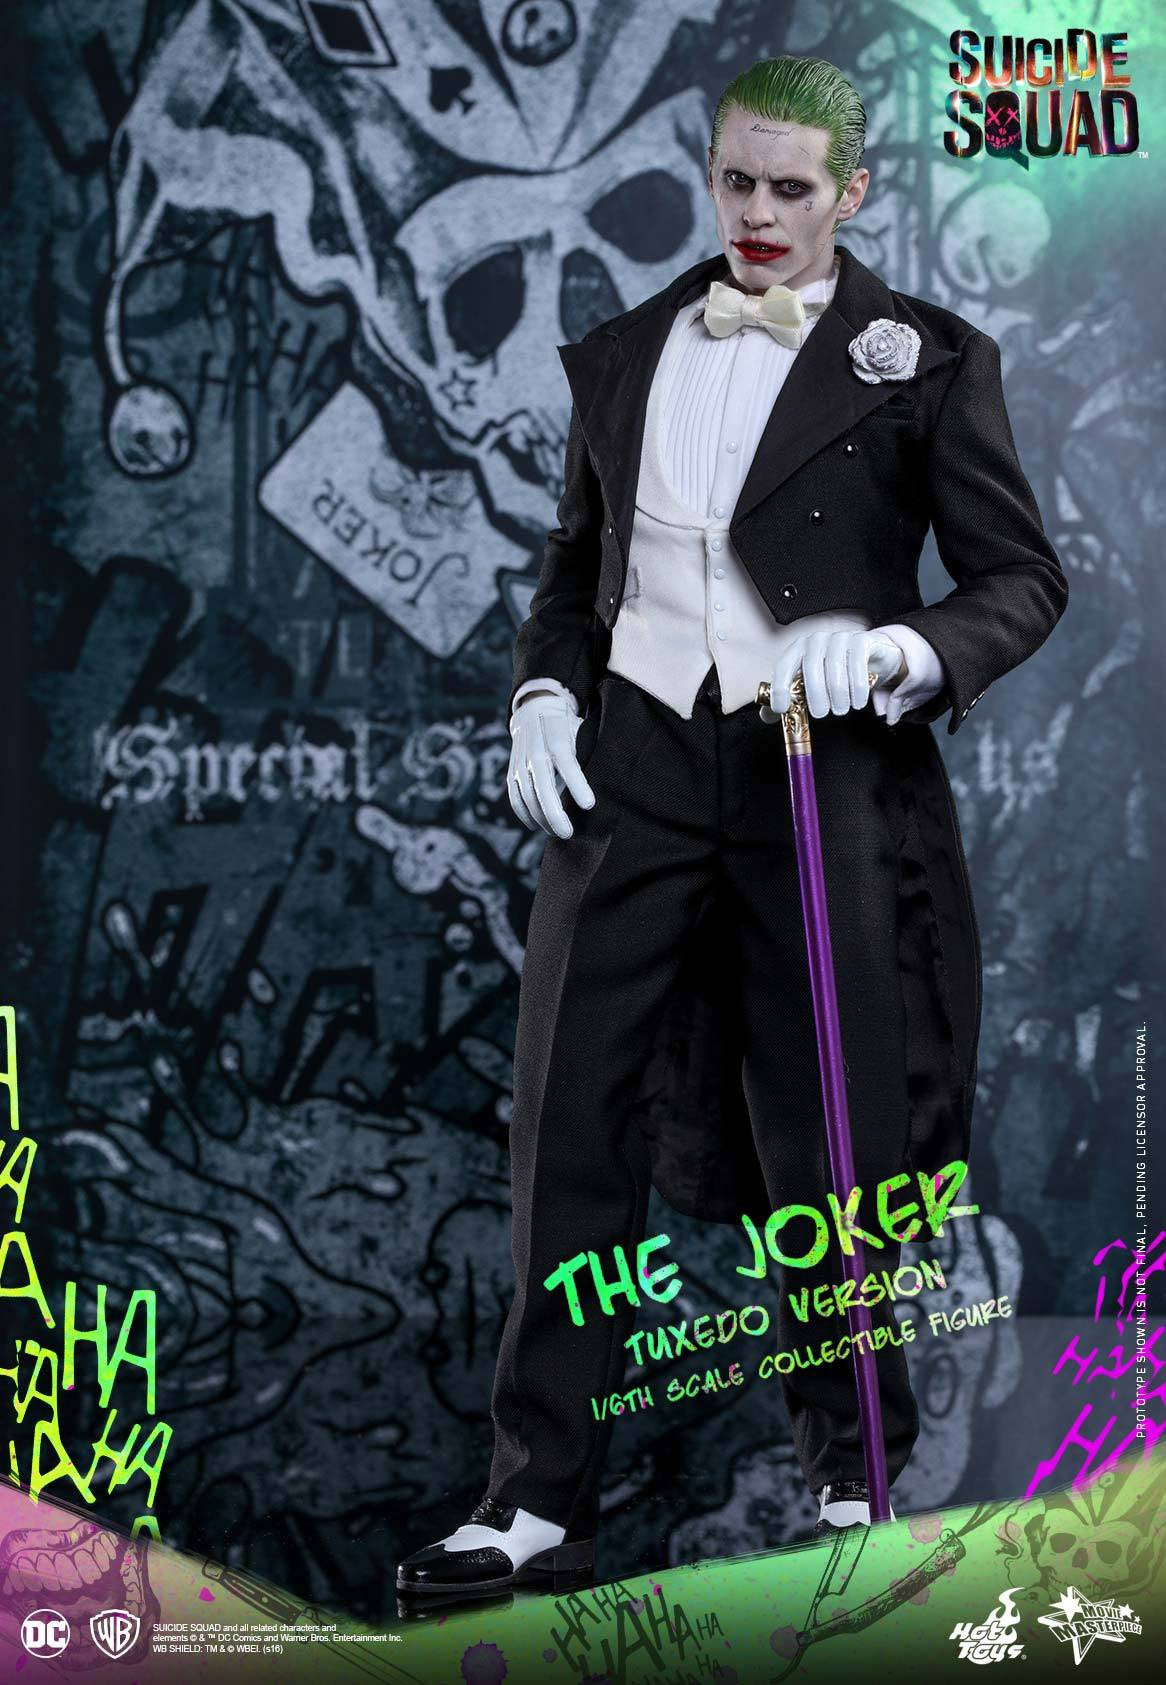 Hot Toys - MMS395 - Suicide Squad - The Joker (Tuxedo Version) - Marvelous Toys - 17